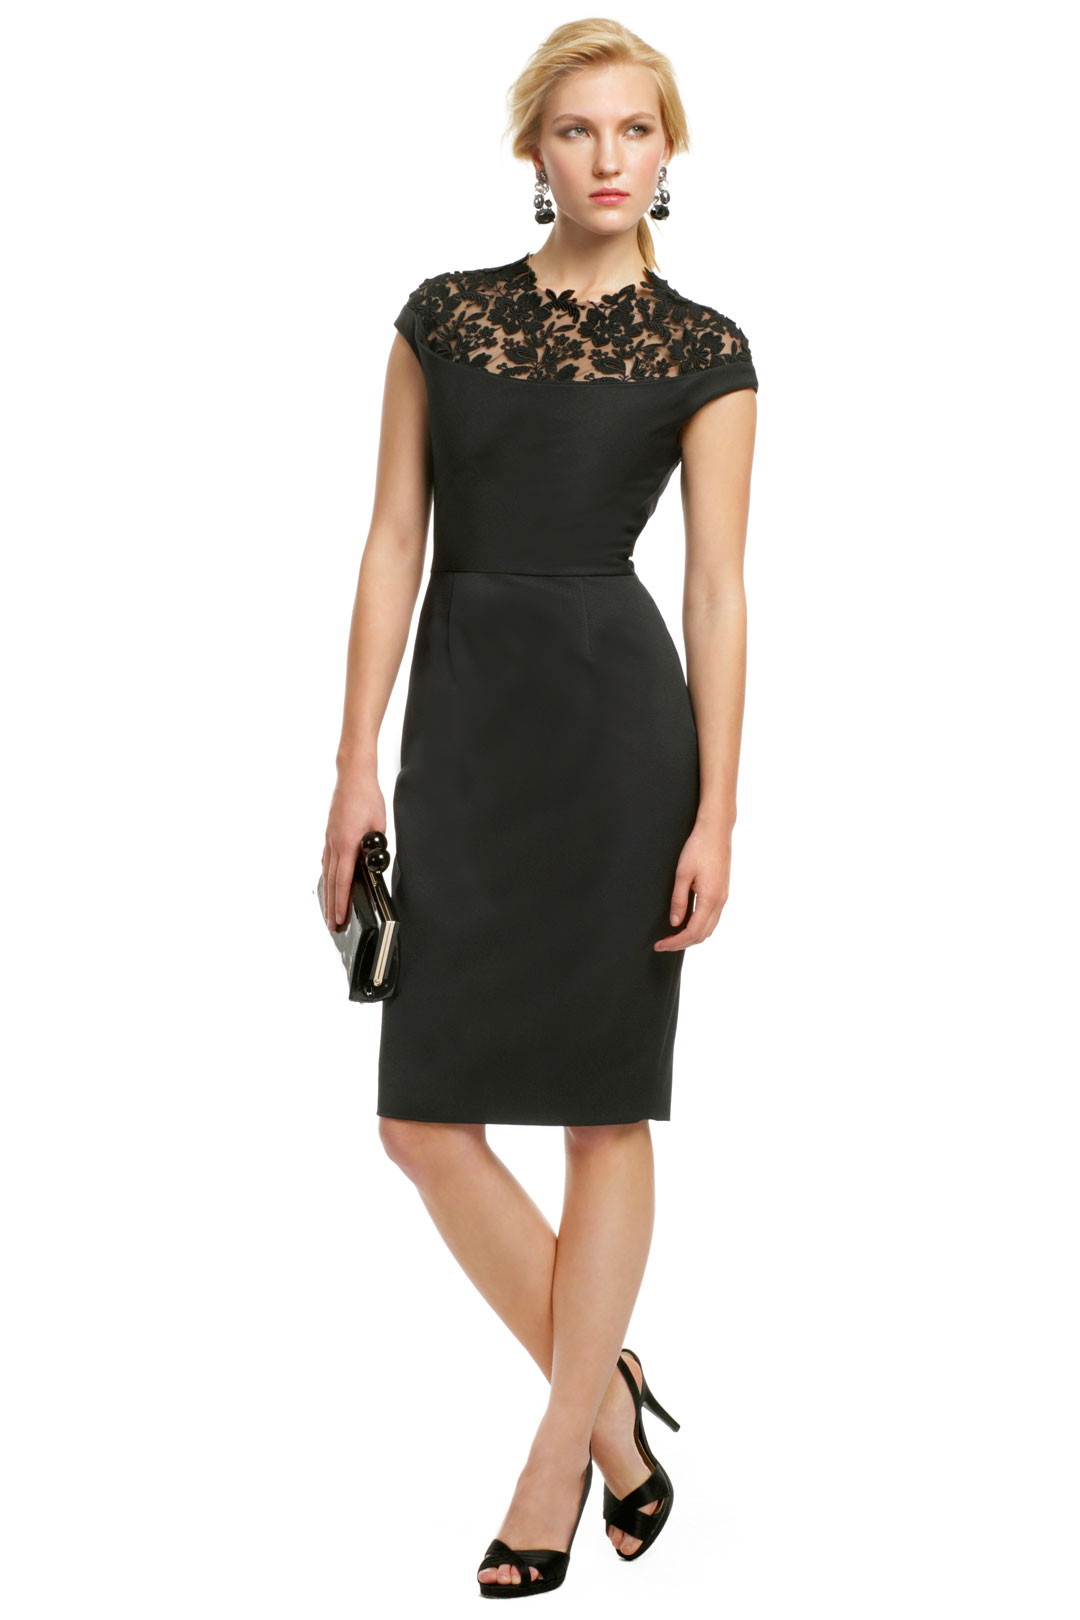 Black Sheath Dress Picture Collection Dressedupgirl Com